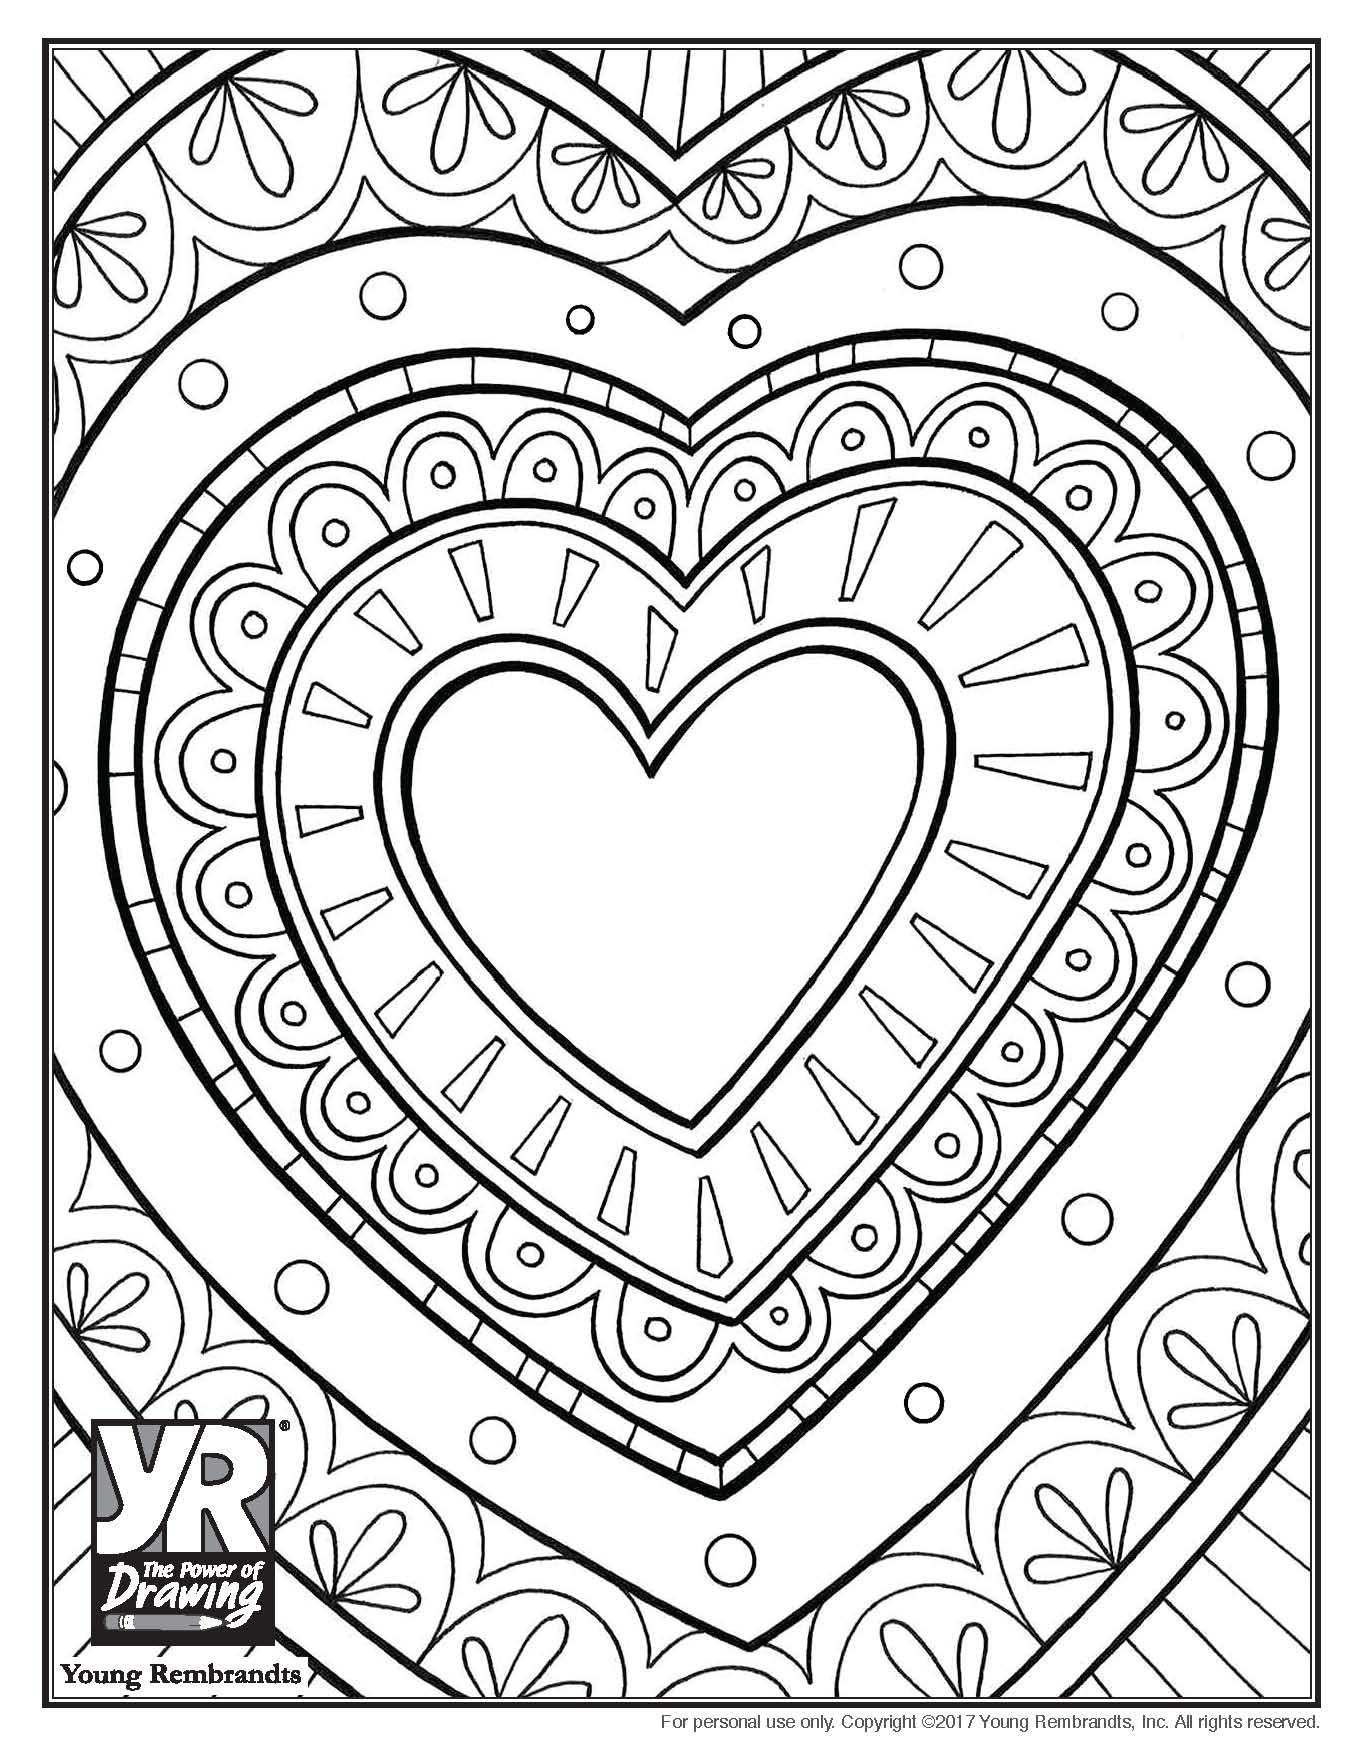 Doily Heart Coloring Page Young Rembrandts Shop